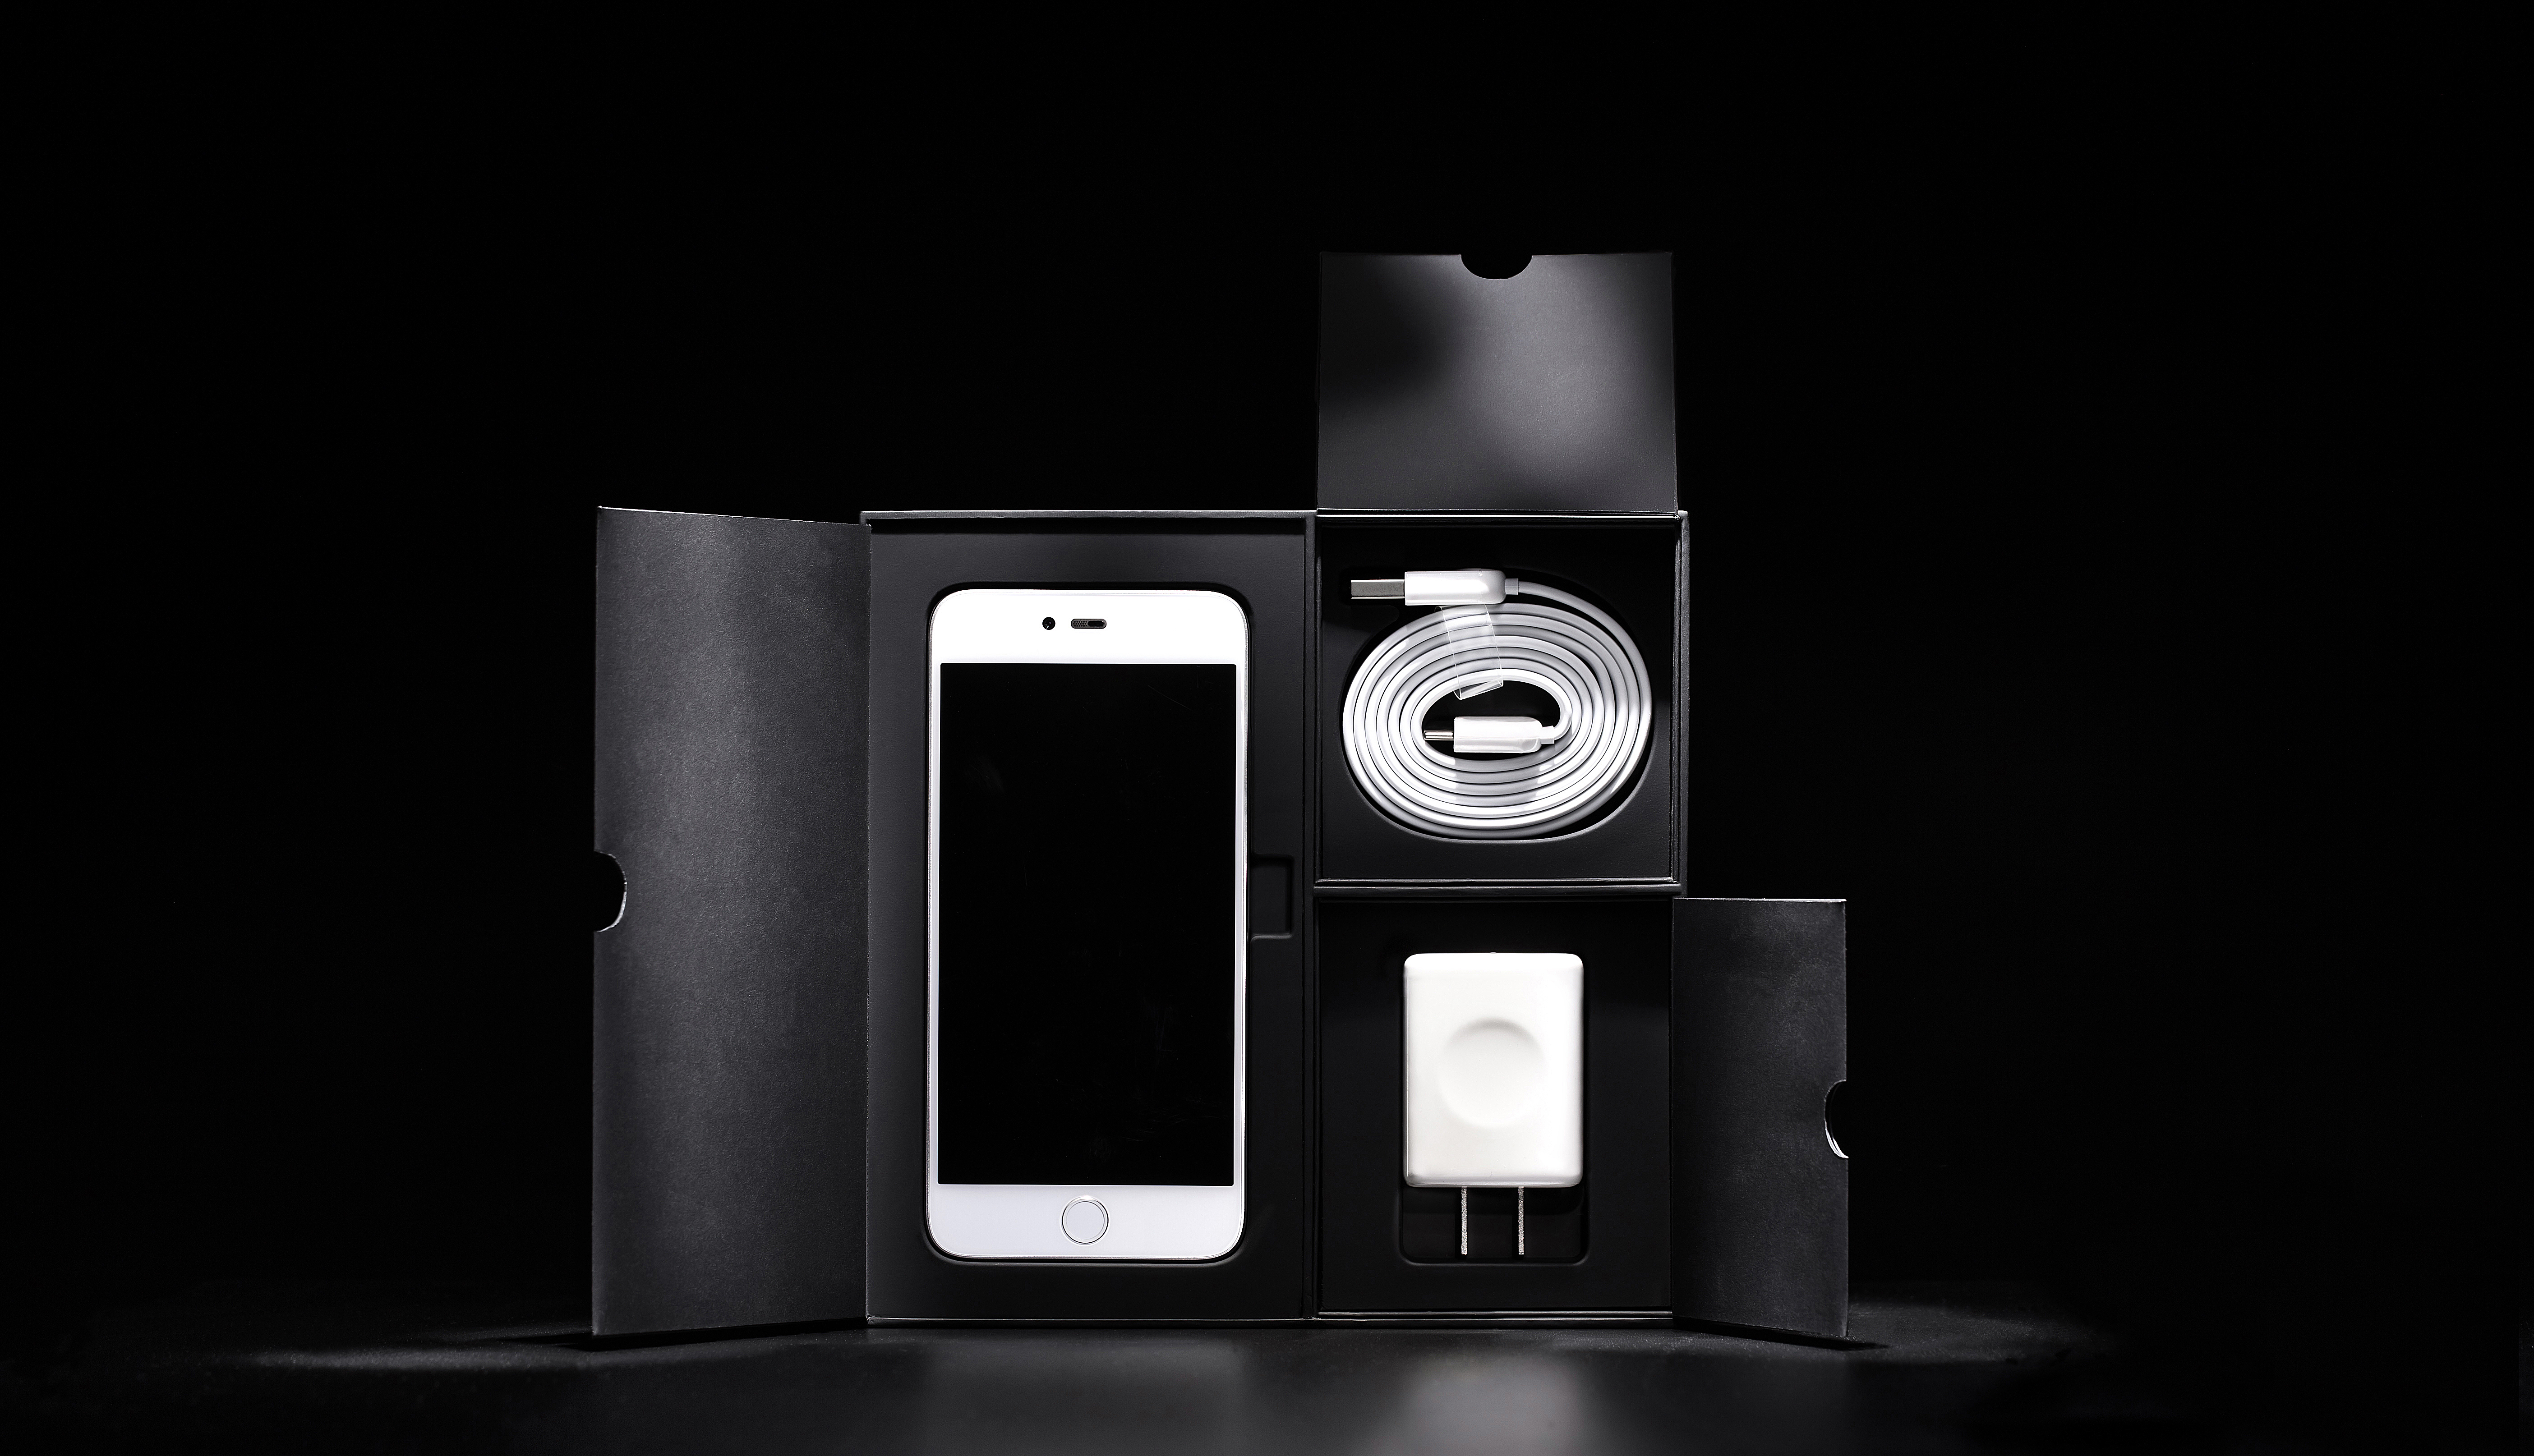 Silver Iphone 6 With Accessories and Box